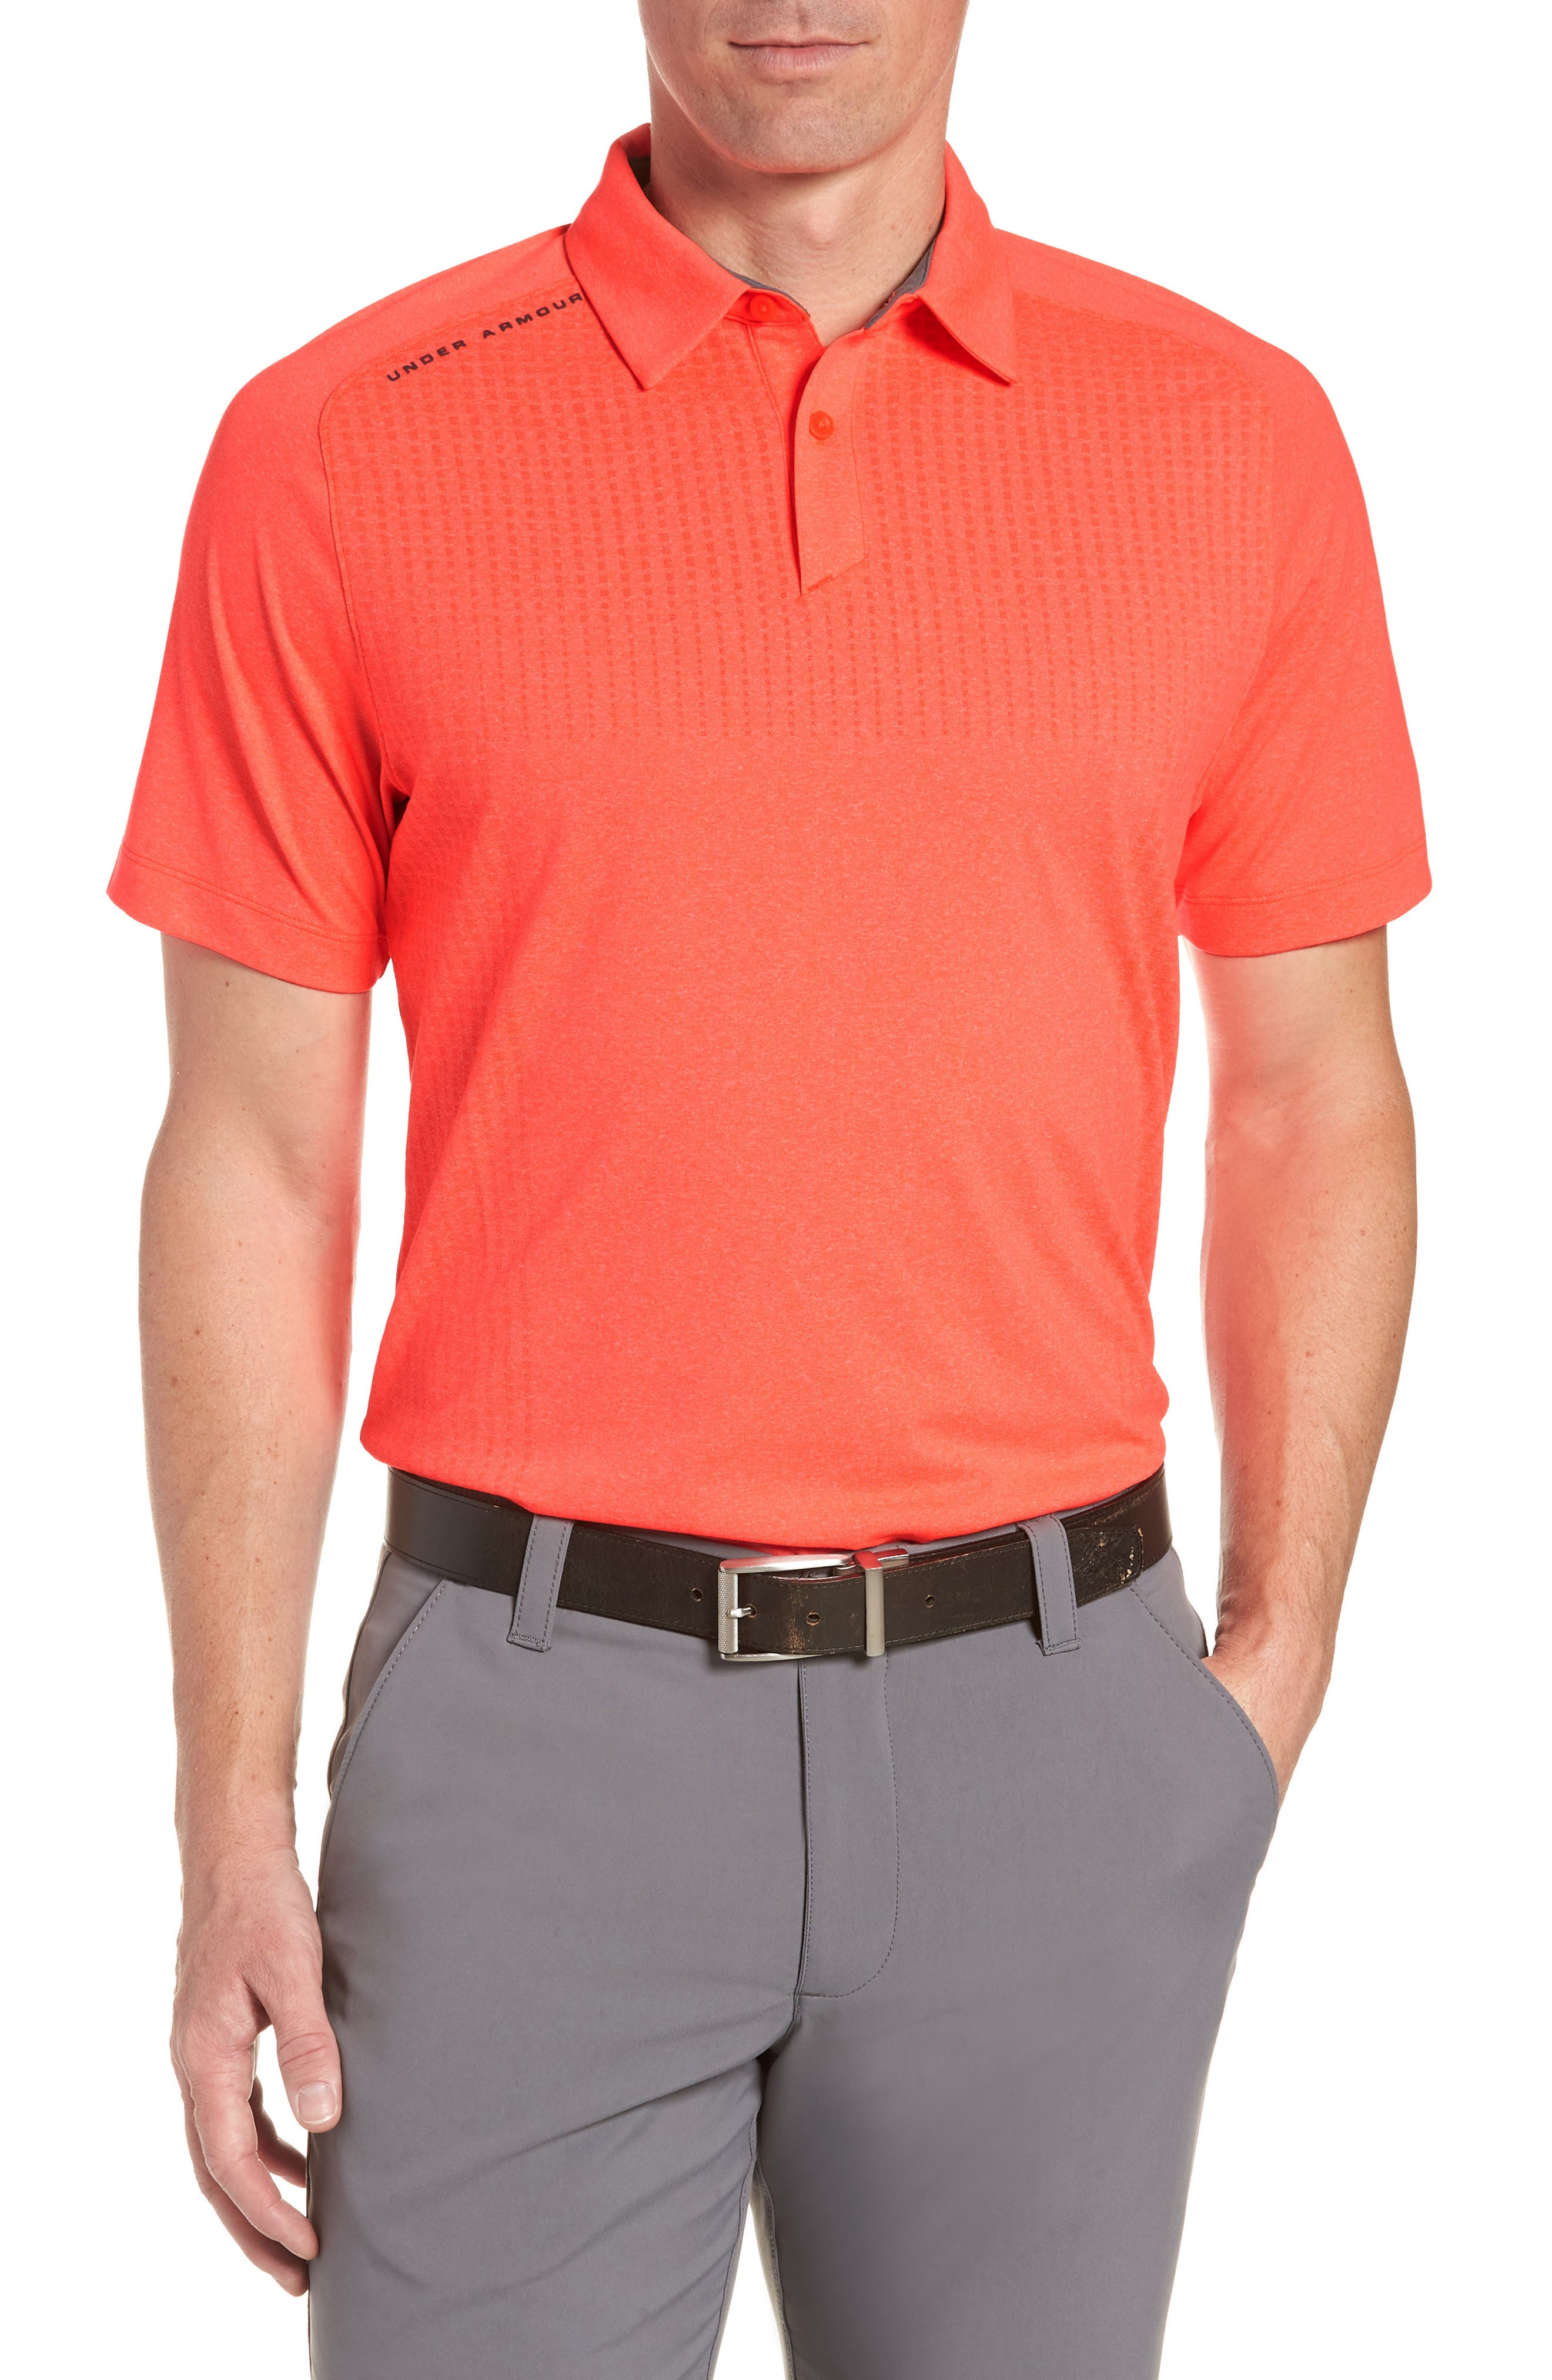 UNDER ARMOUR Threadborne Outer Glow Regular Fit Polo Shirt, Main, color, NEON CORAL LIGHT/ HEATHER